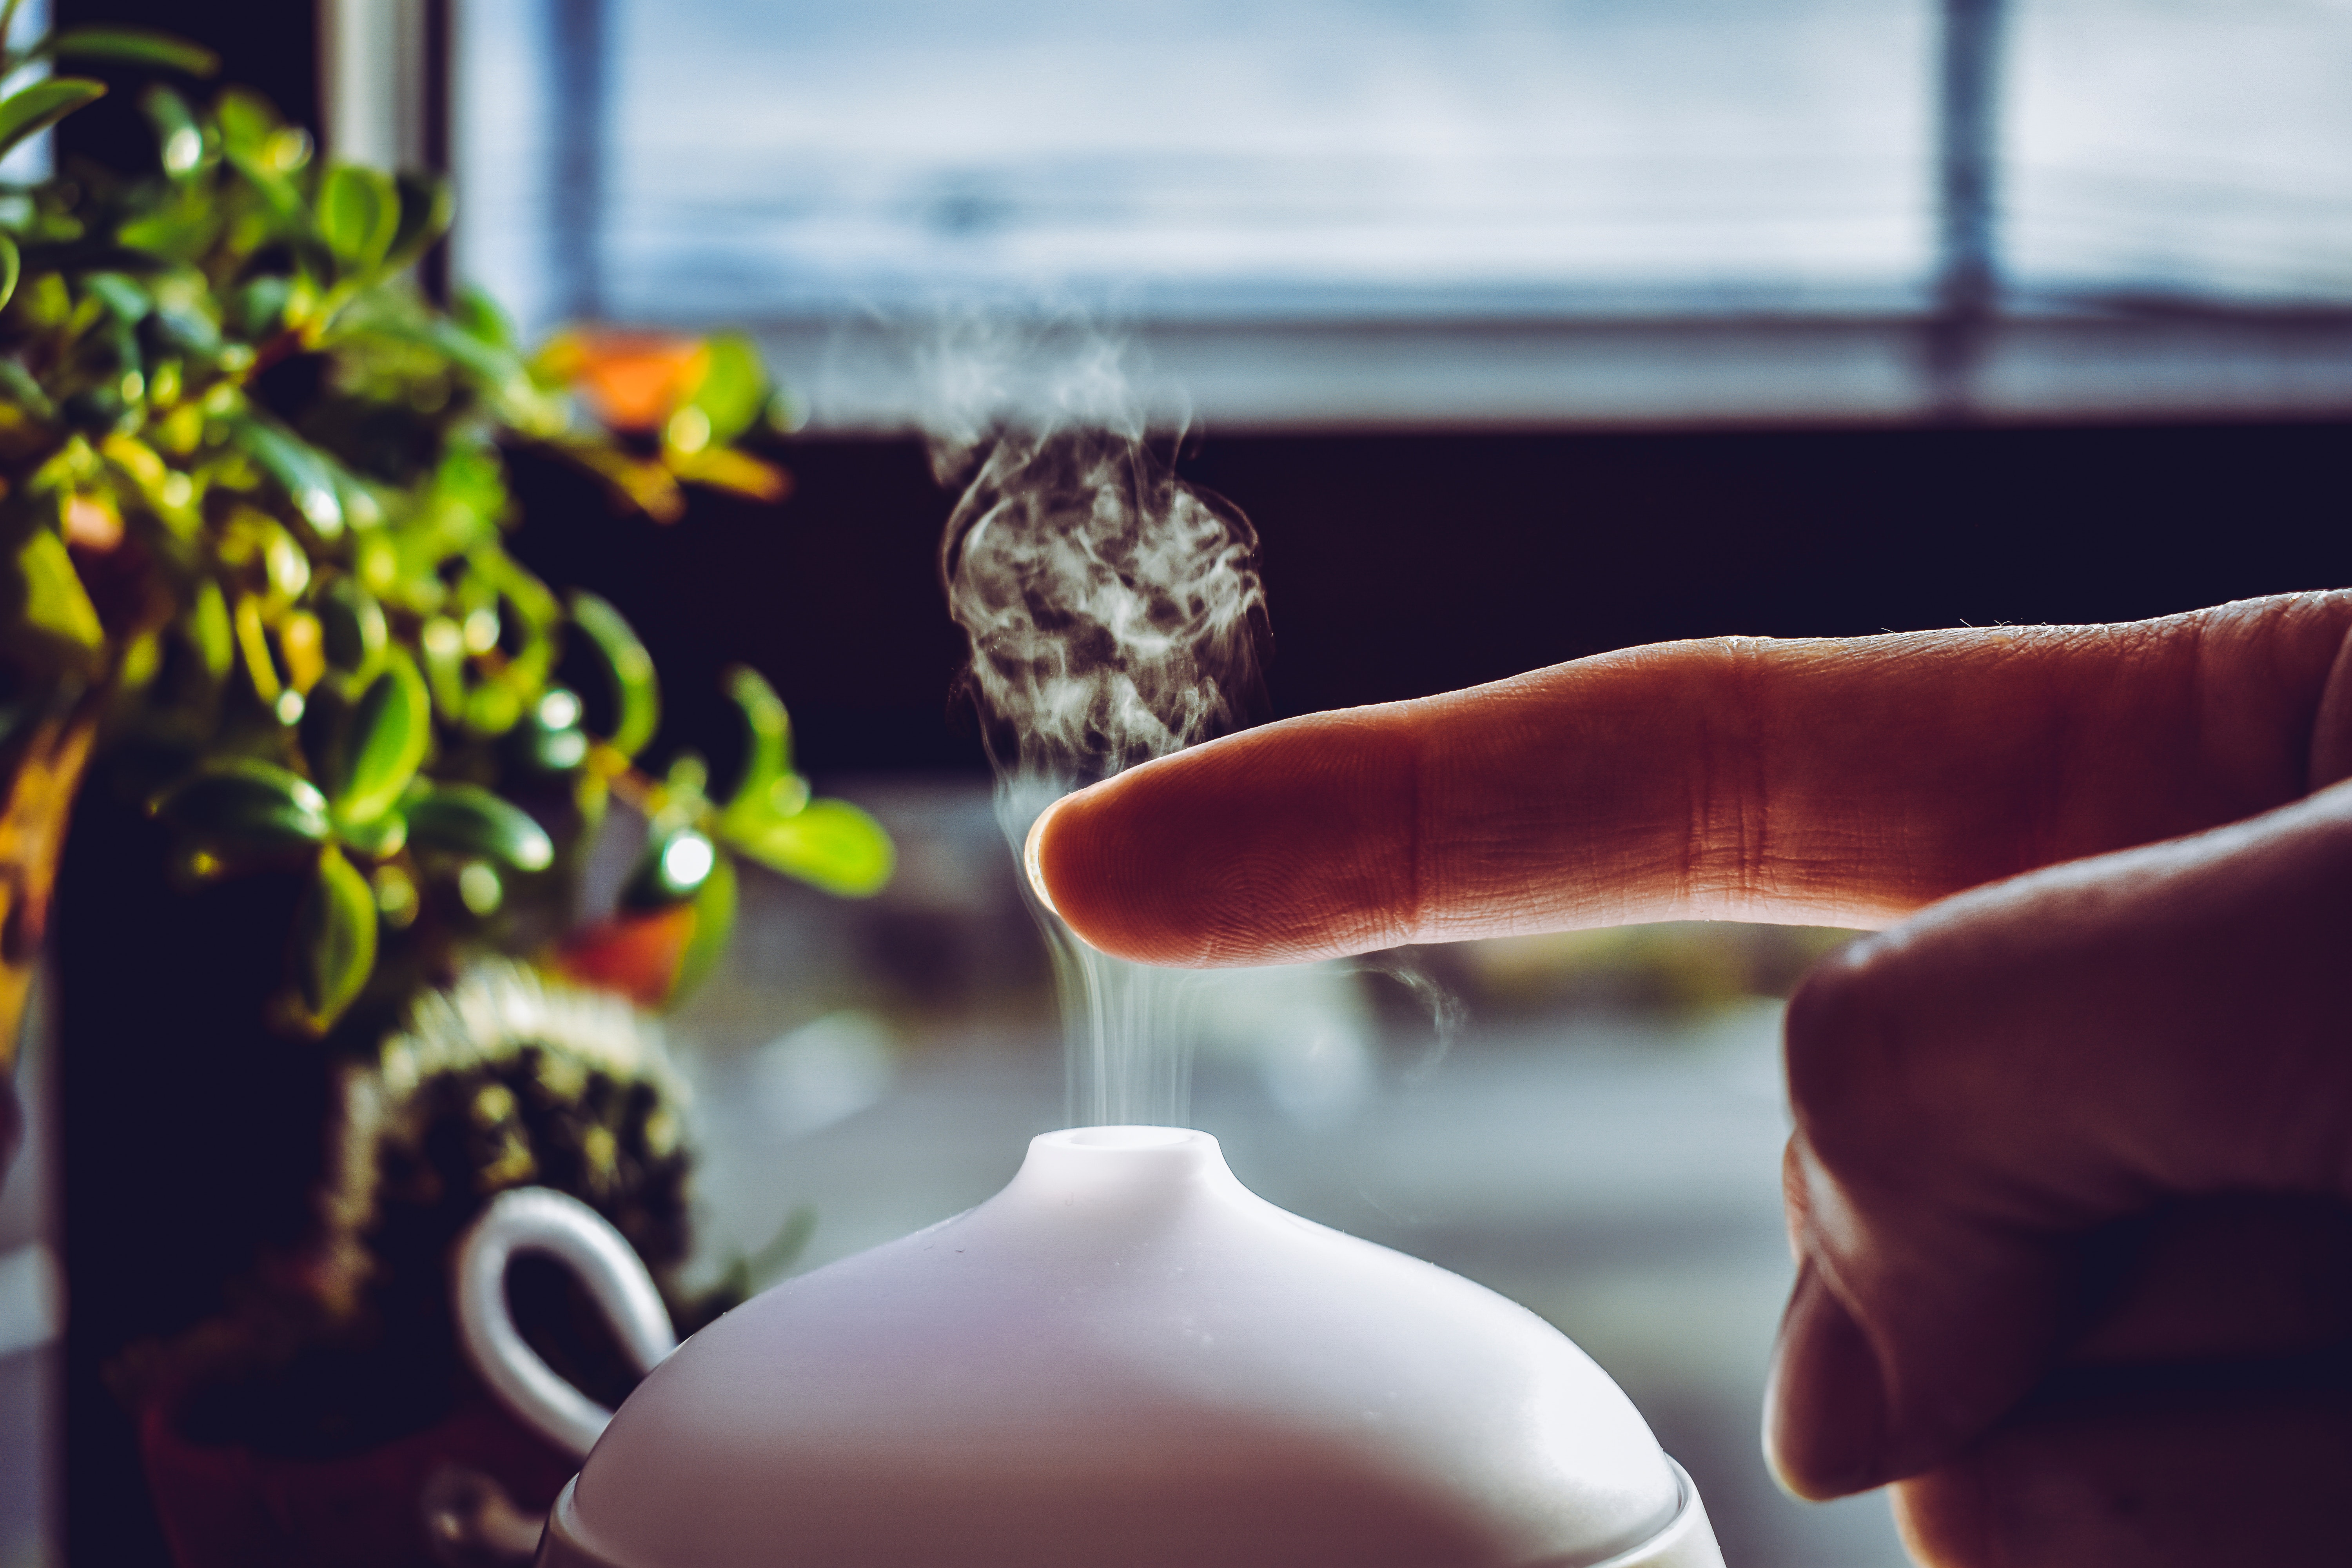 An in-depth review of the best essential oil diffusers available in 2019.